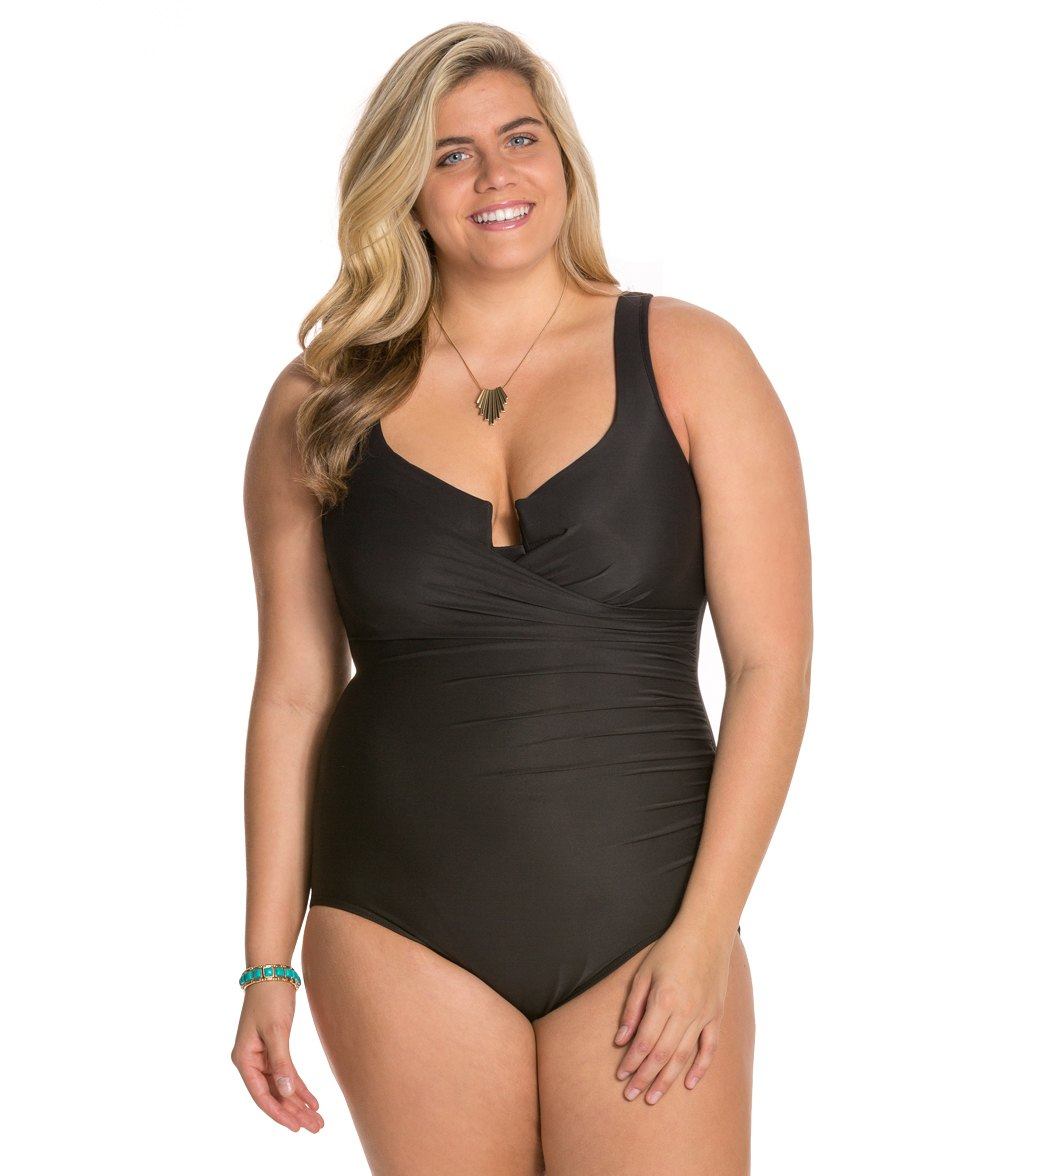 Bra Size Plus Size swimwear